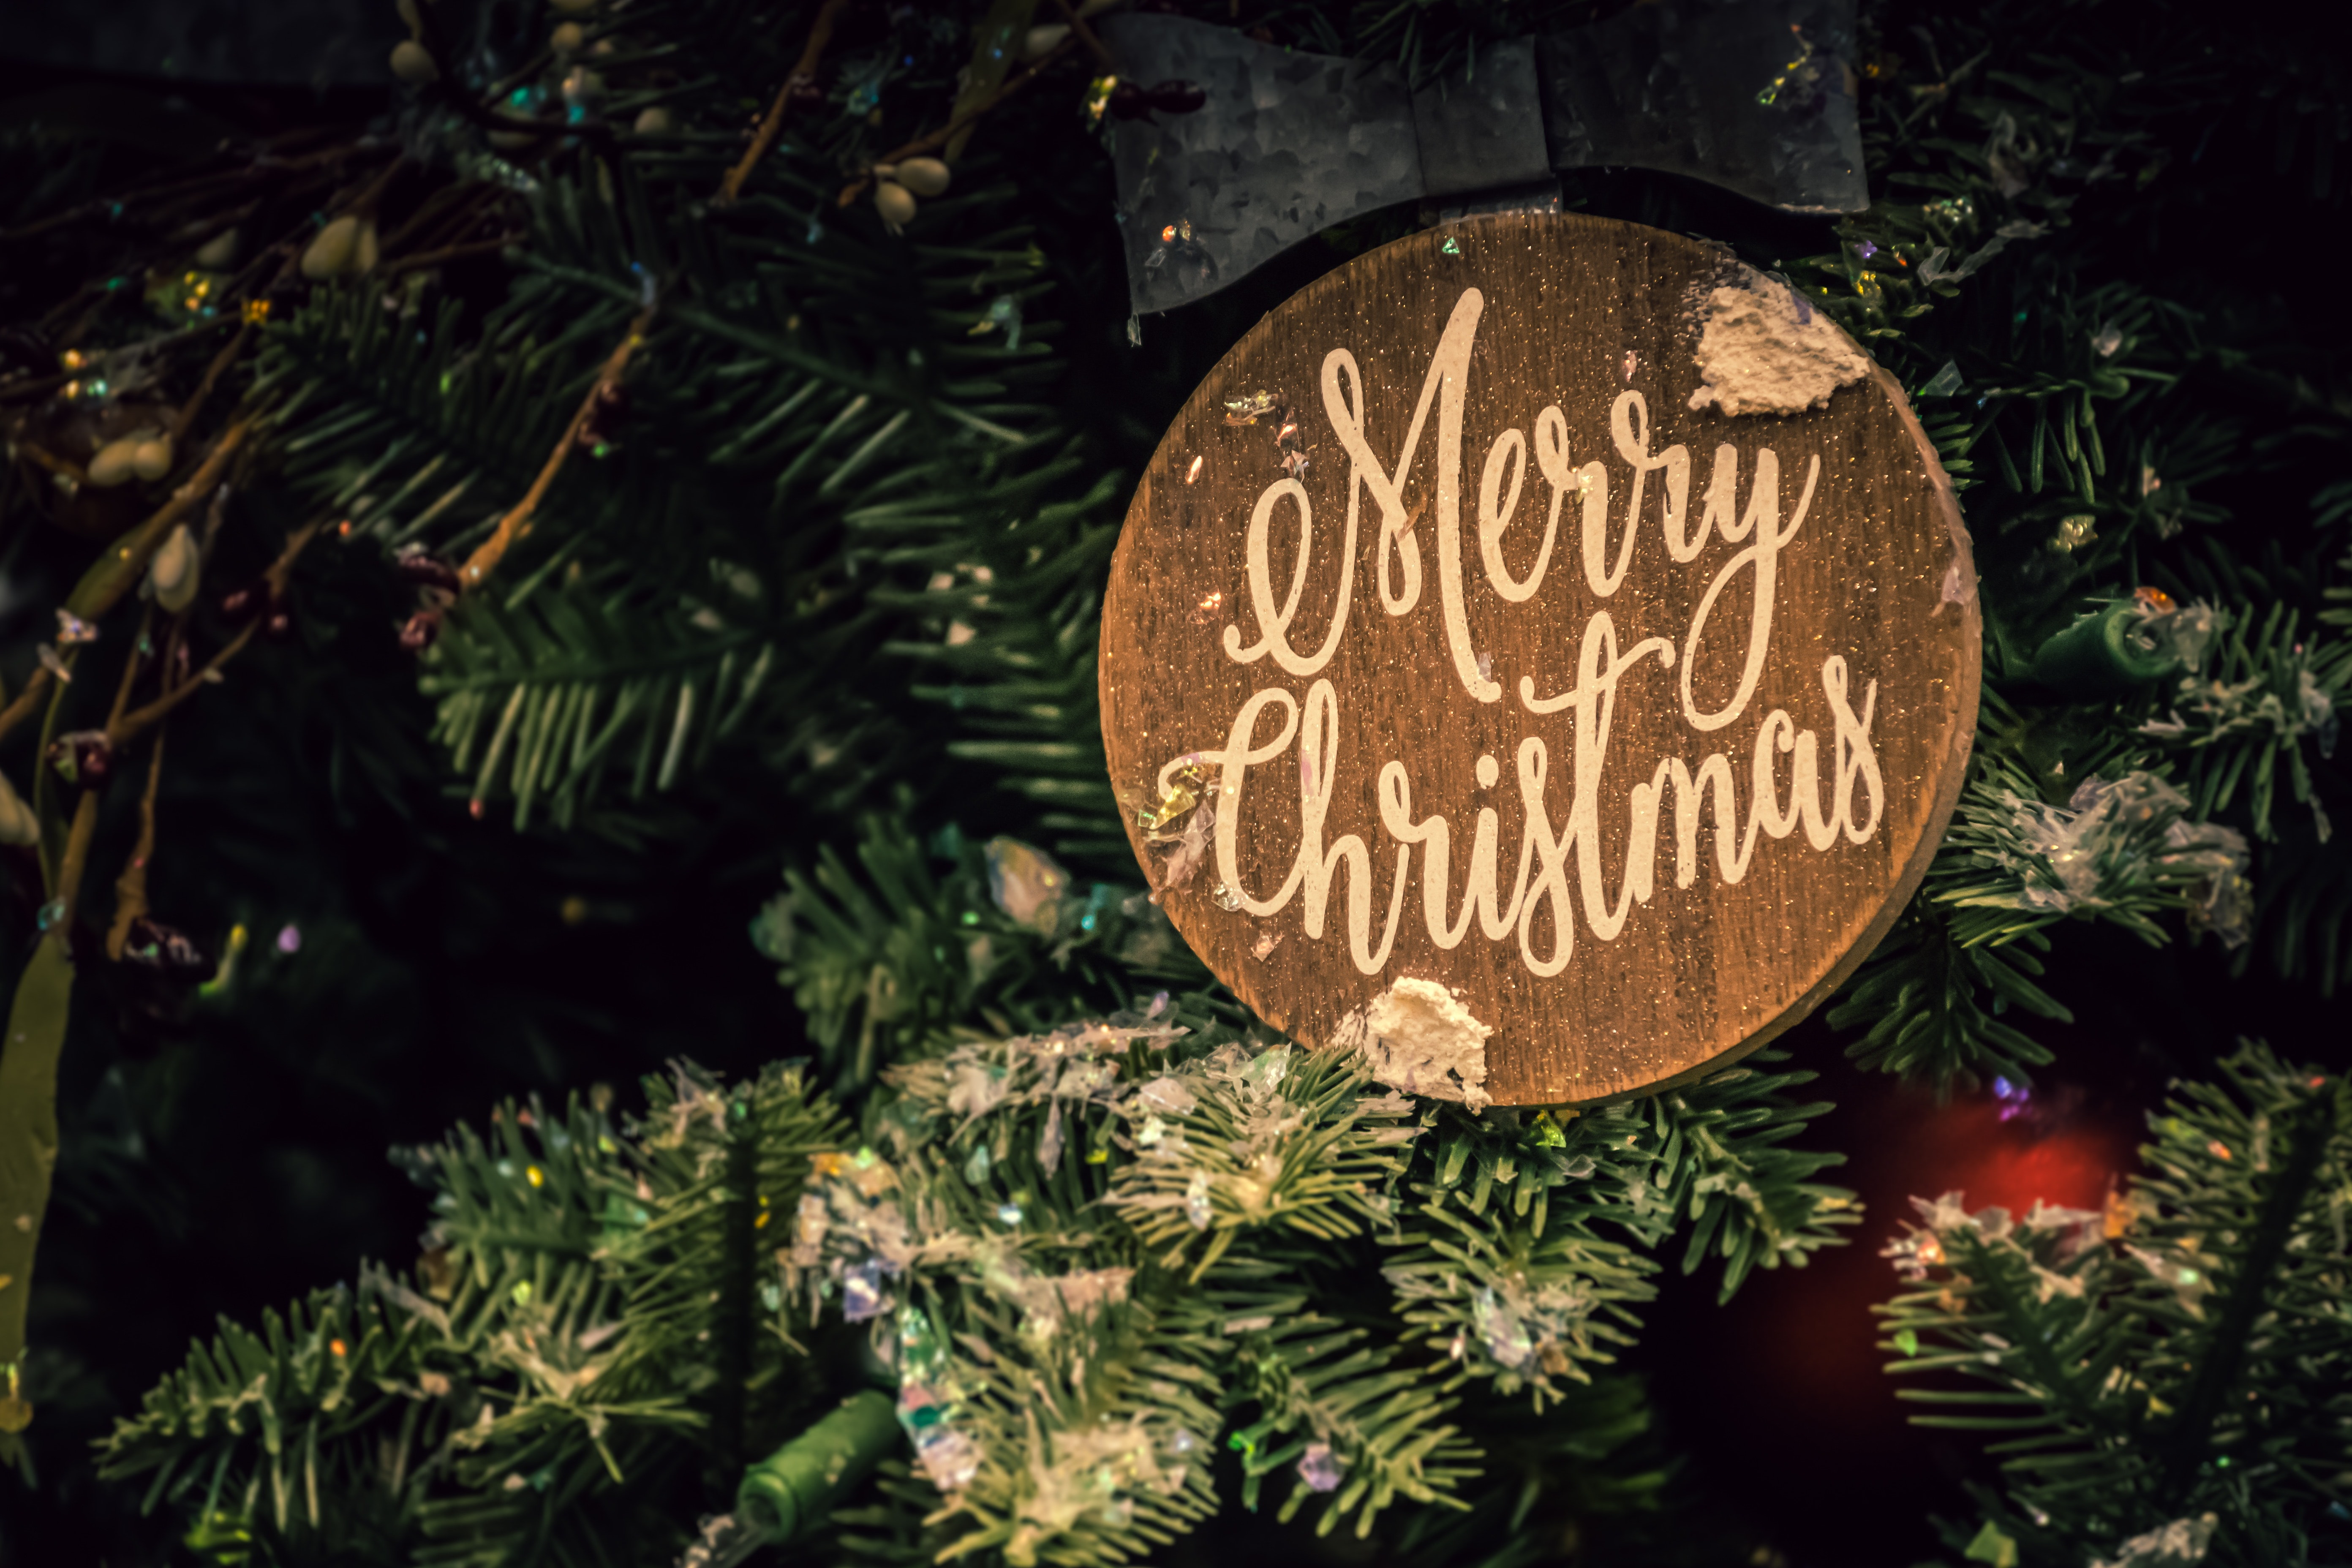 Merry Christmas Ornament Sign.Merry Christmas Sign Free Stock Photo